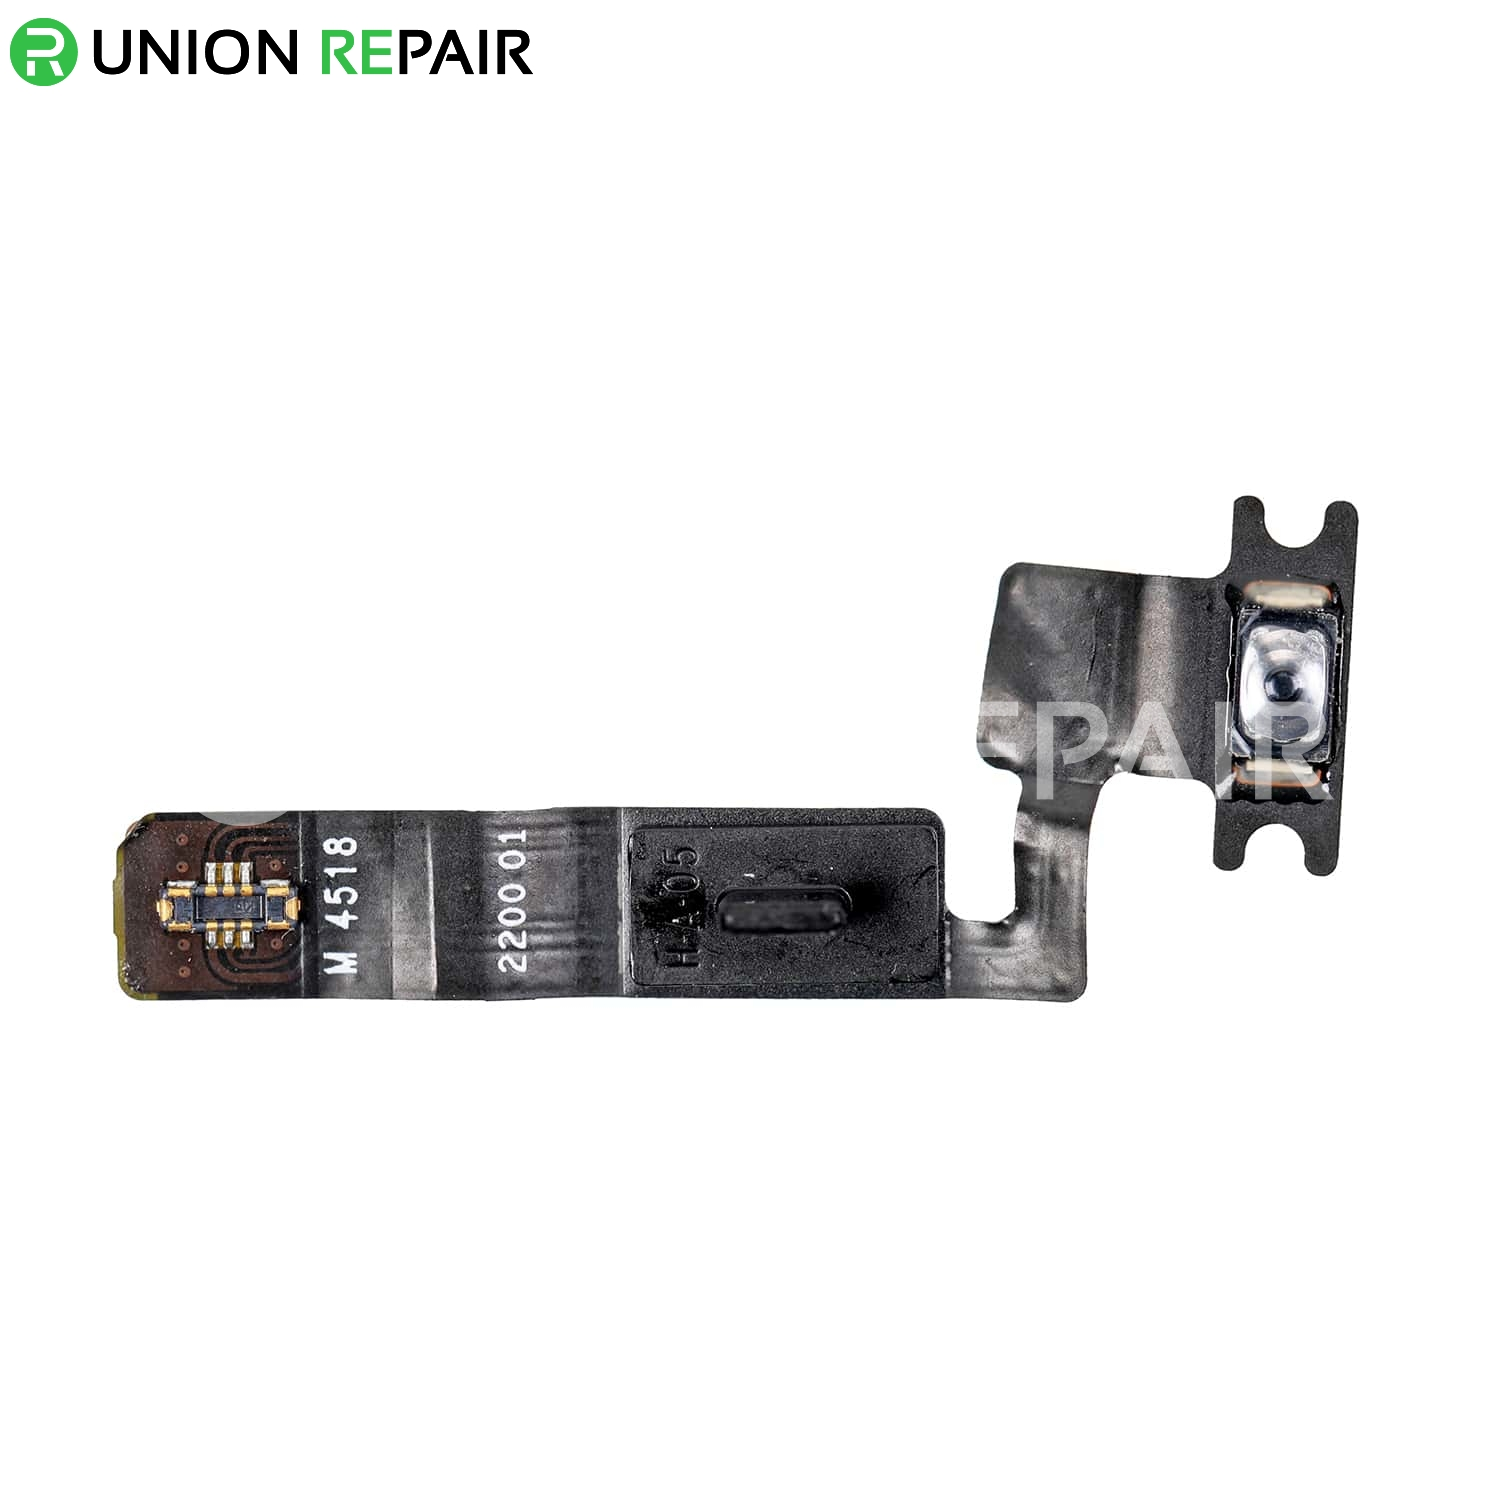 Replacement for iPad Air 3 Power Button Flex Cable